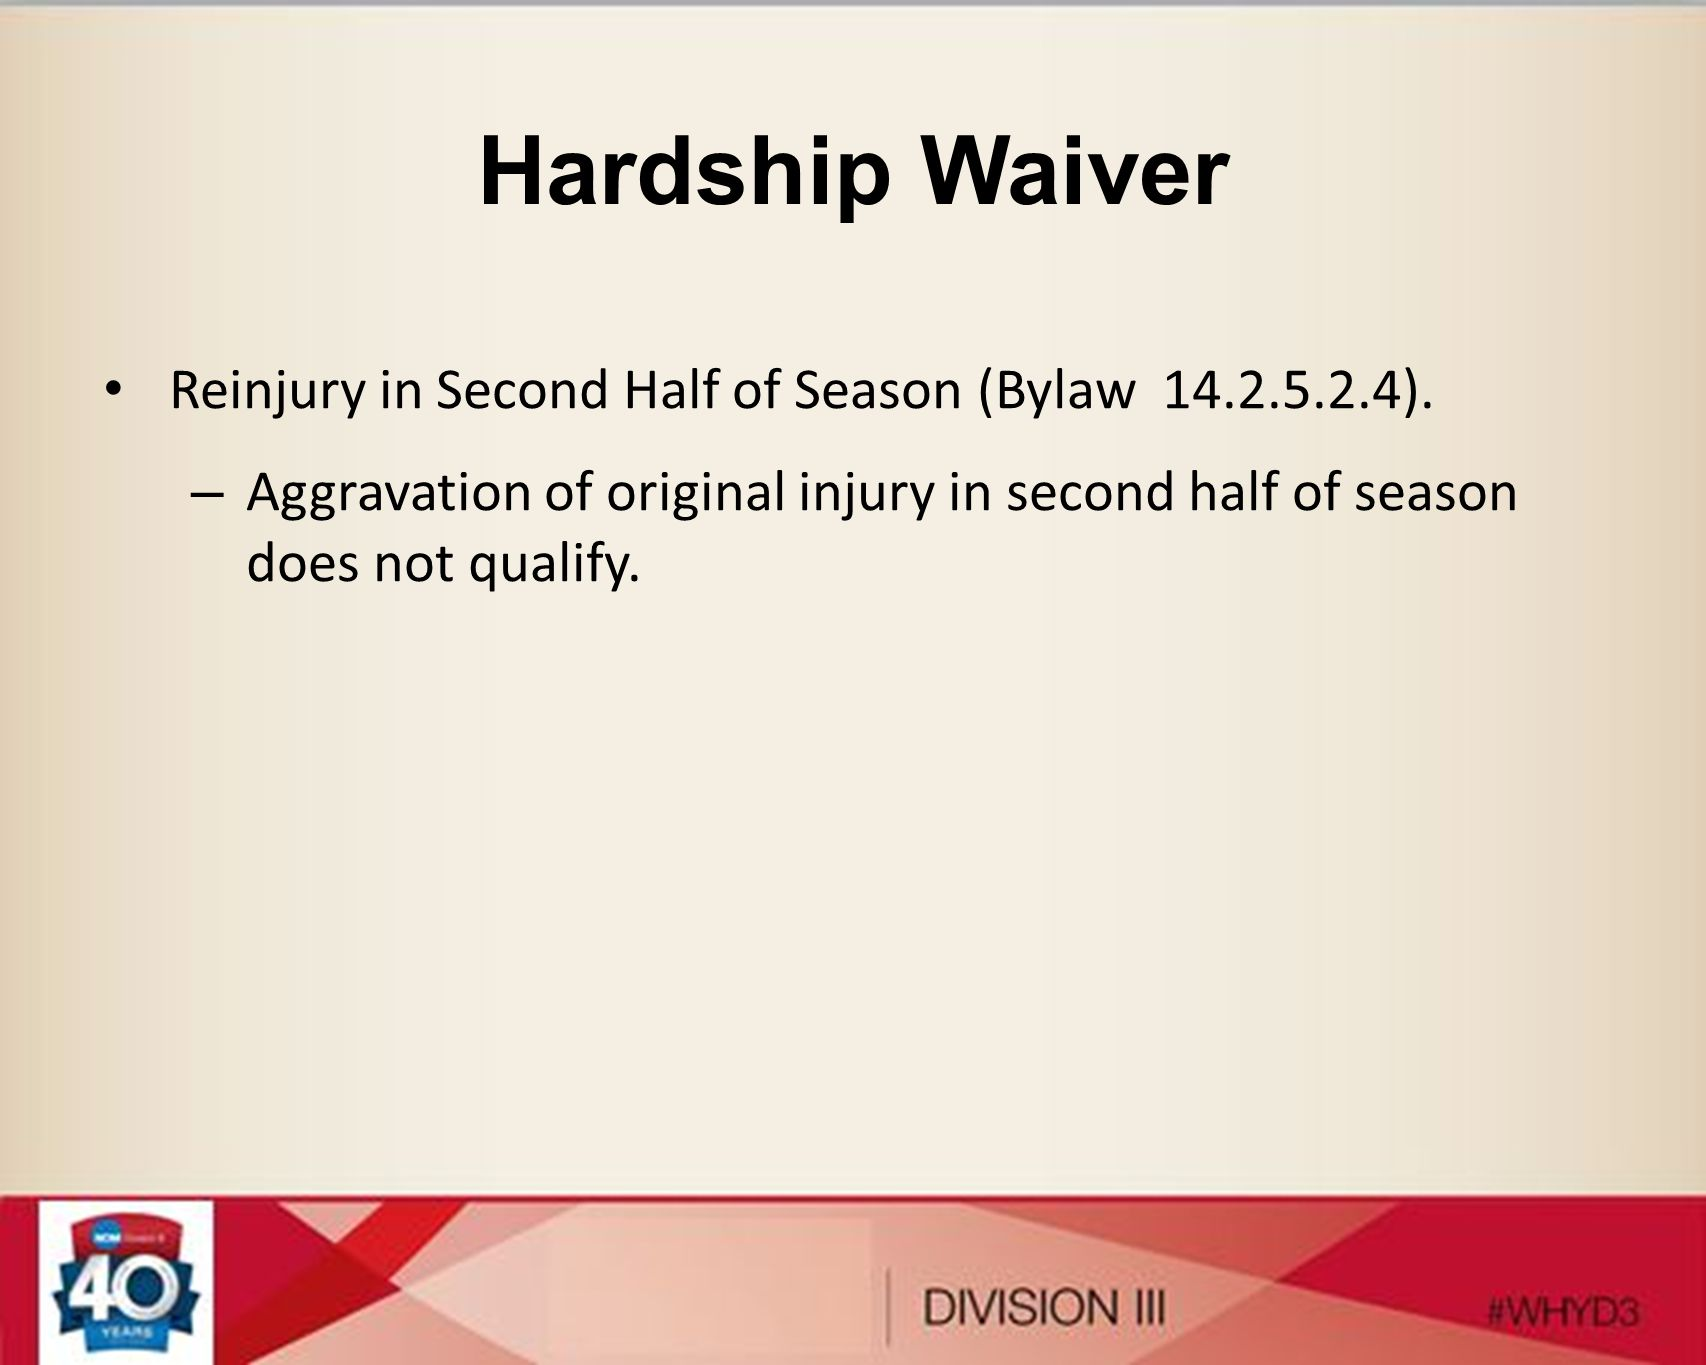 Hardship Waiver Reinjury in Second Half of Season (Bylaw 14.2.5.2.4). – Aggravation of original injury in second half of season does not qualify.